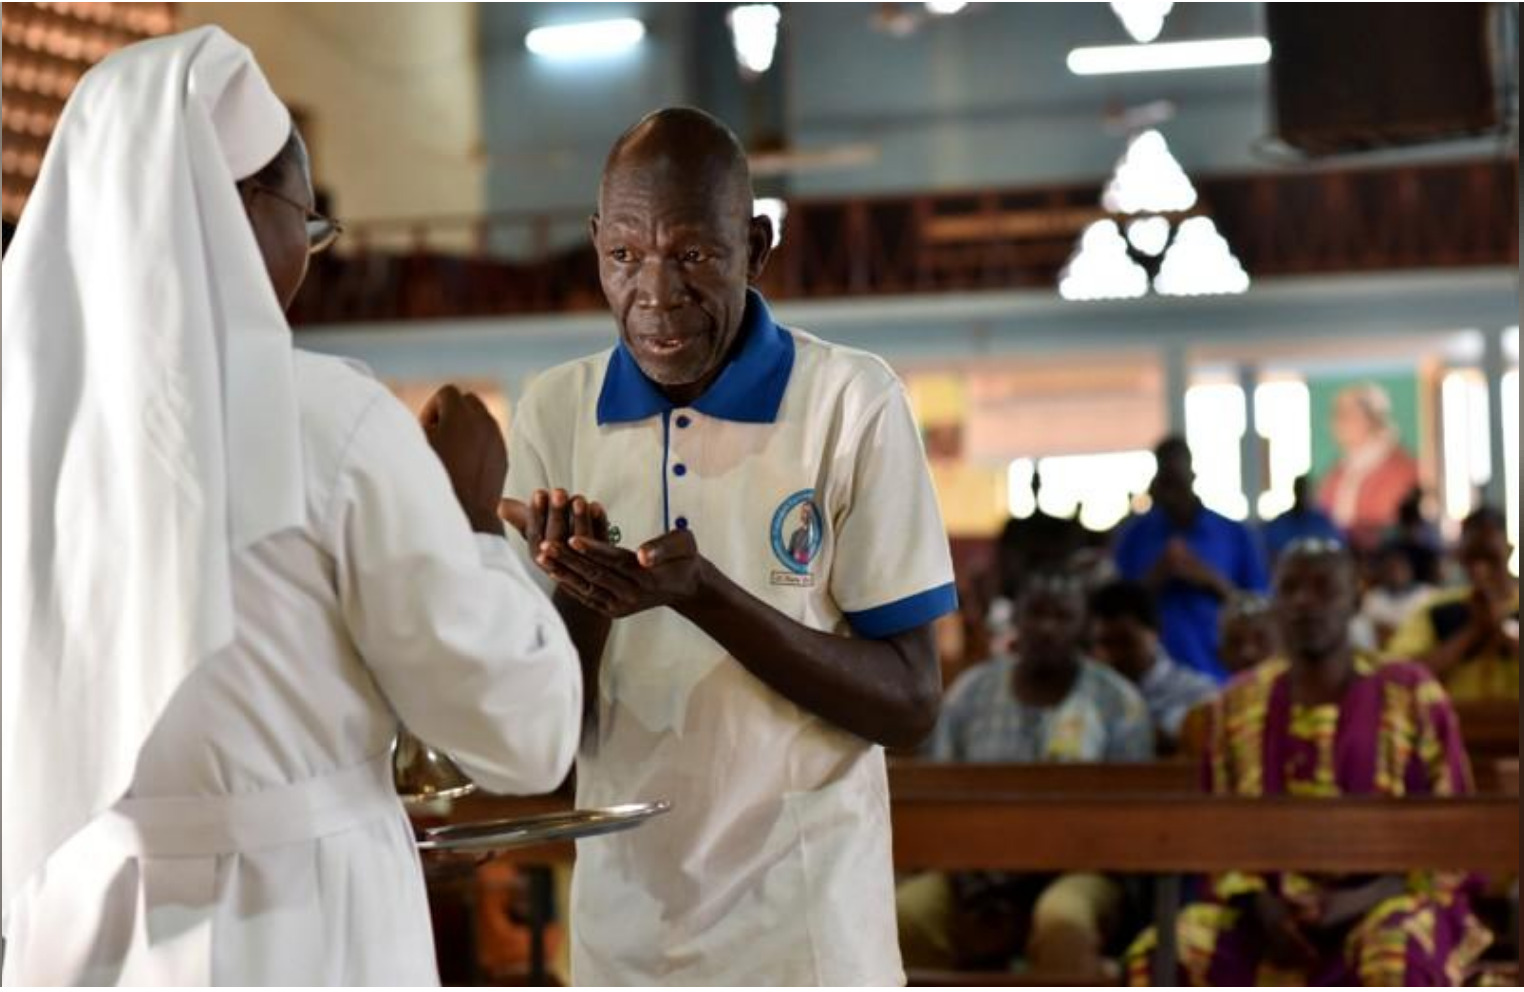 A catholic man receives communion at the cathedral of Our Lady of Kaya in the city of Kaya, Burkina Faso May 16, 2019. REUTERS/Anne Mimault